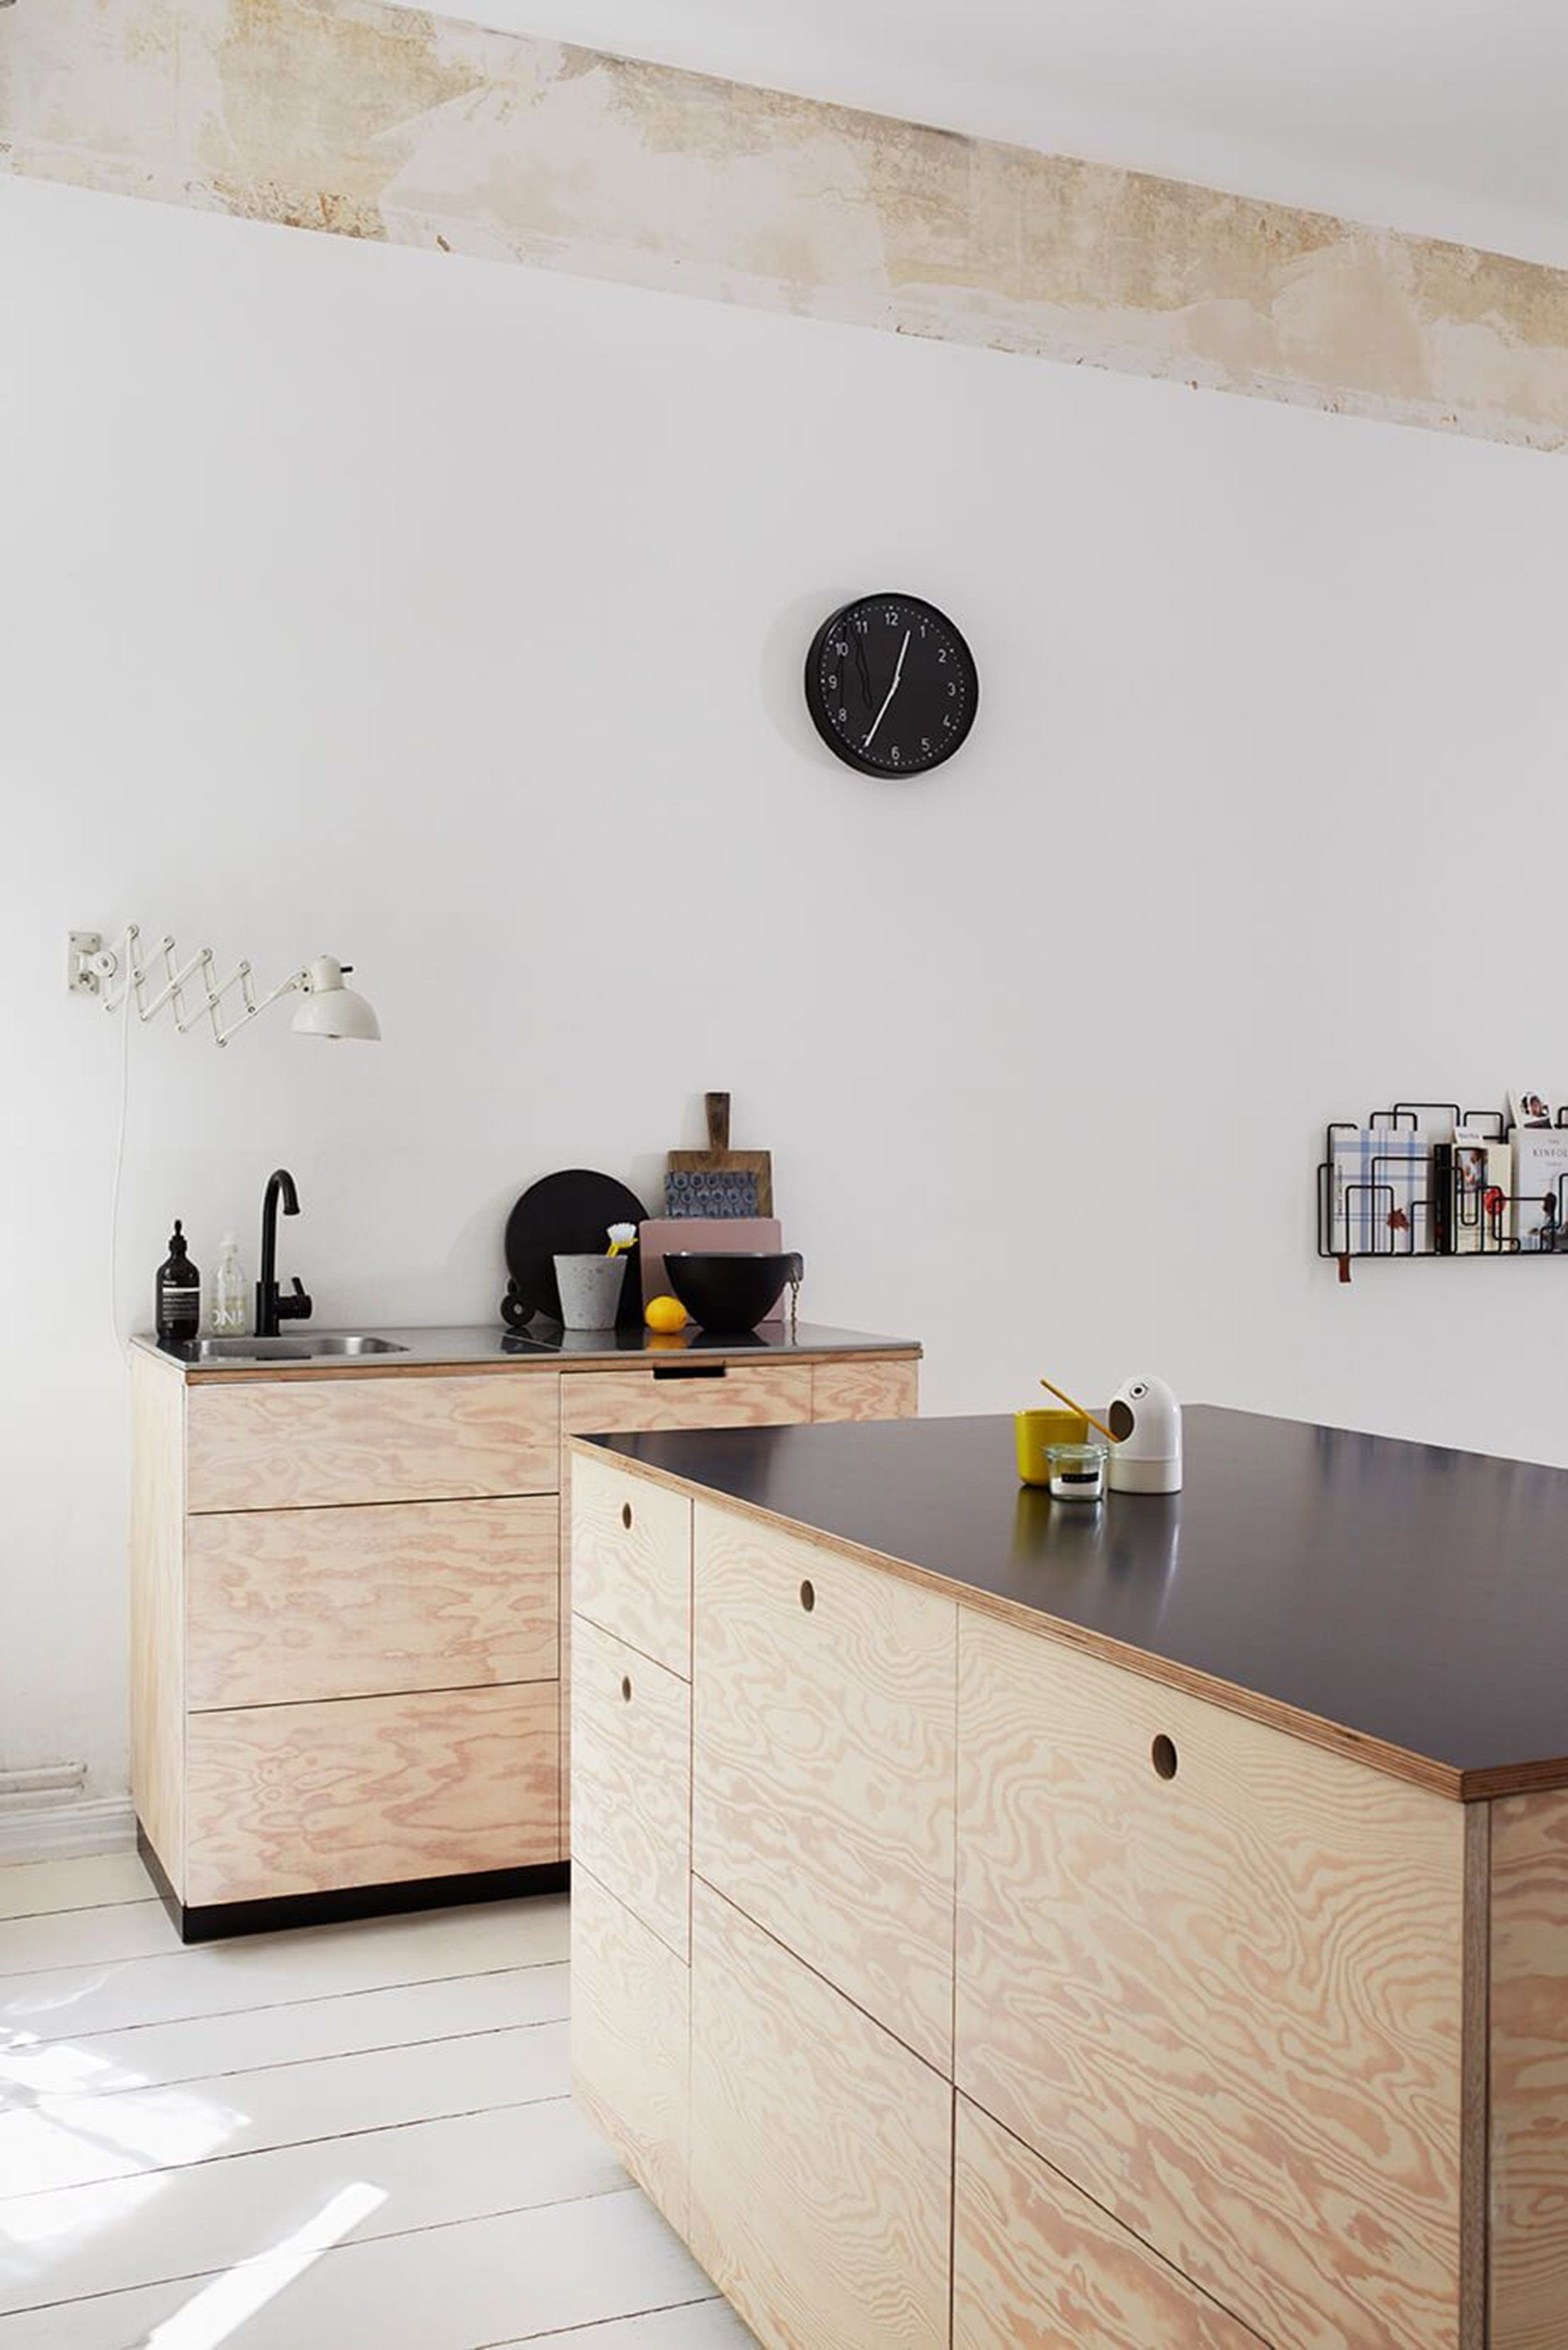 Is No Hardware The New Hardware Trend For Kitchens Style By